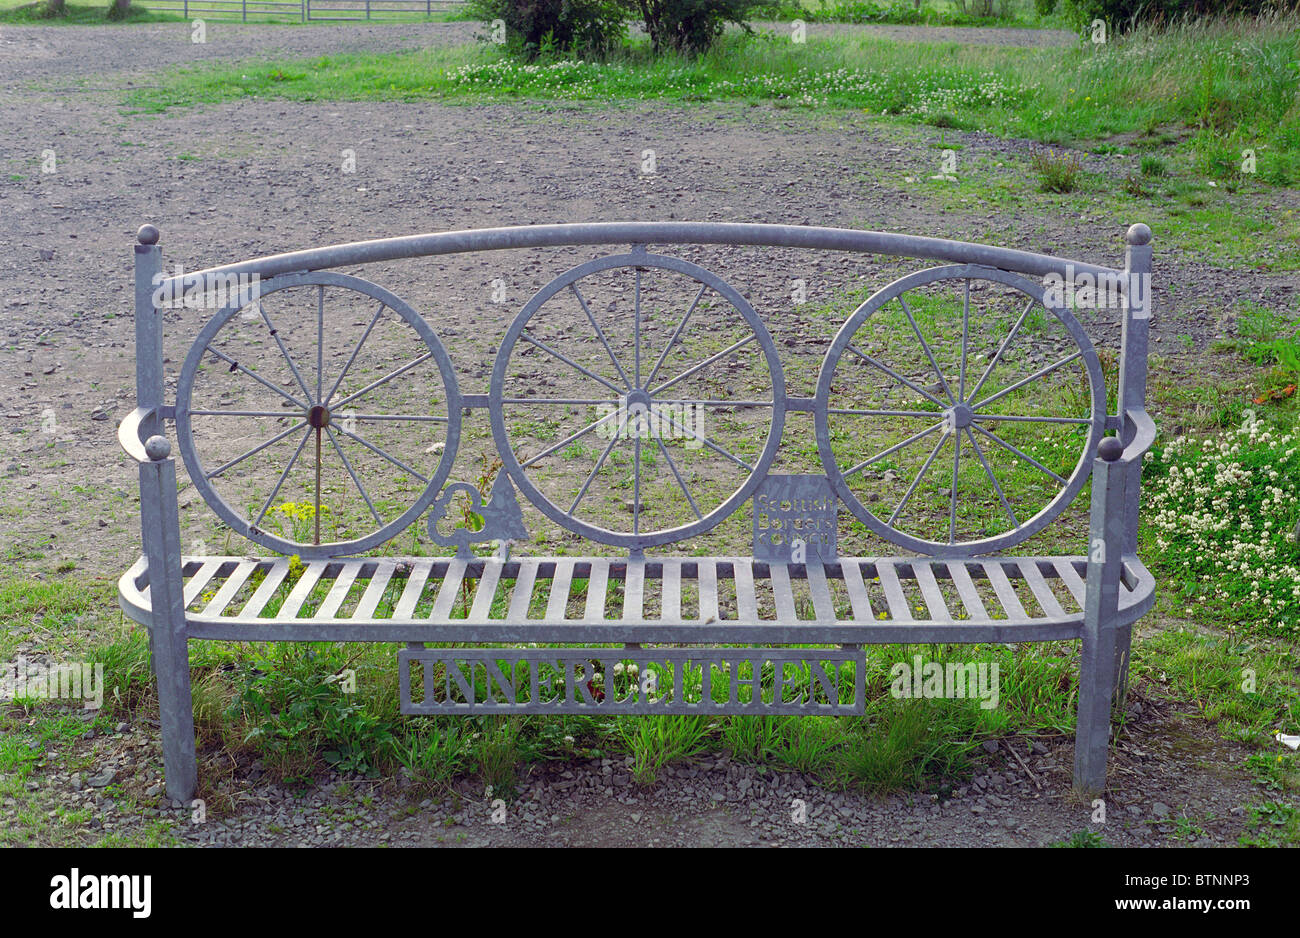 Metal Galvanised Public Bench bearing the place name Innerleithen, Borders, Scotland - Stock Image